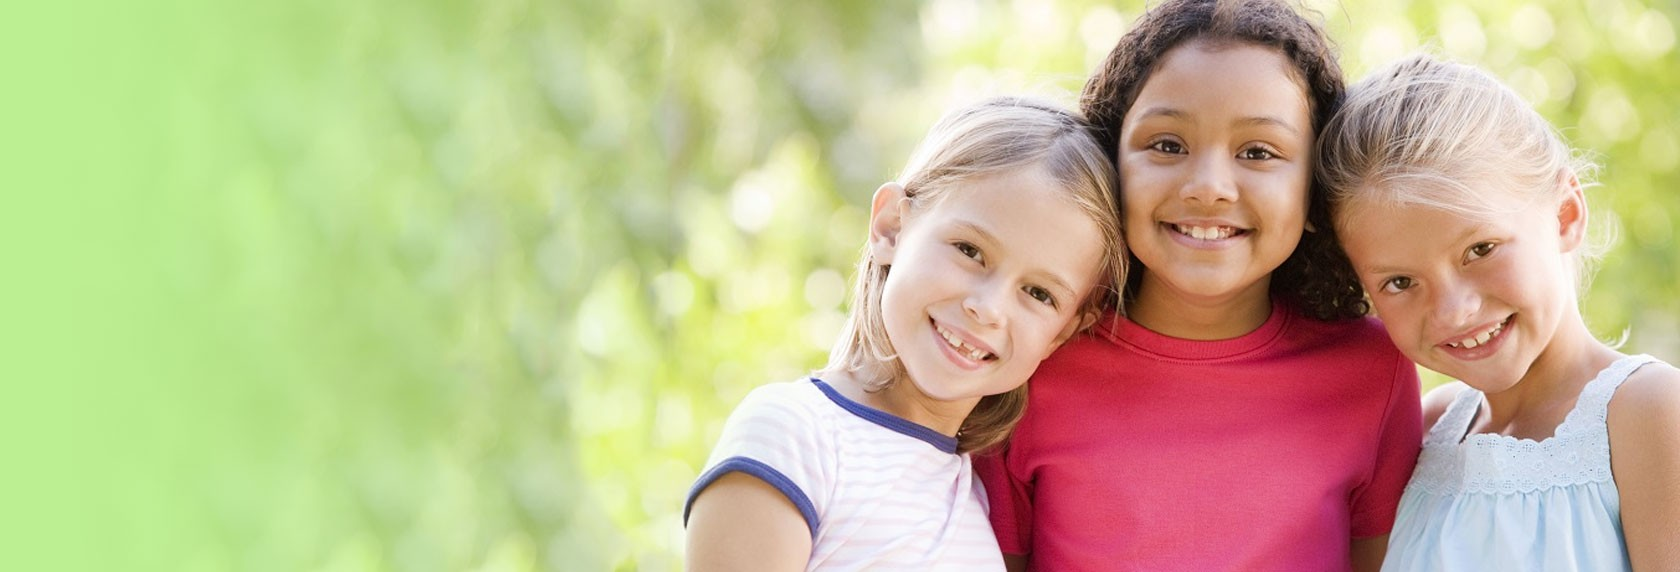 Embrace your future with Mehta Orthodontics